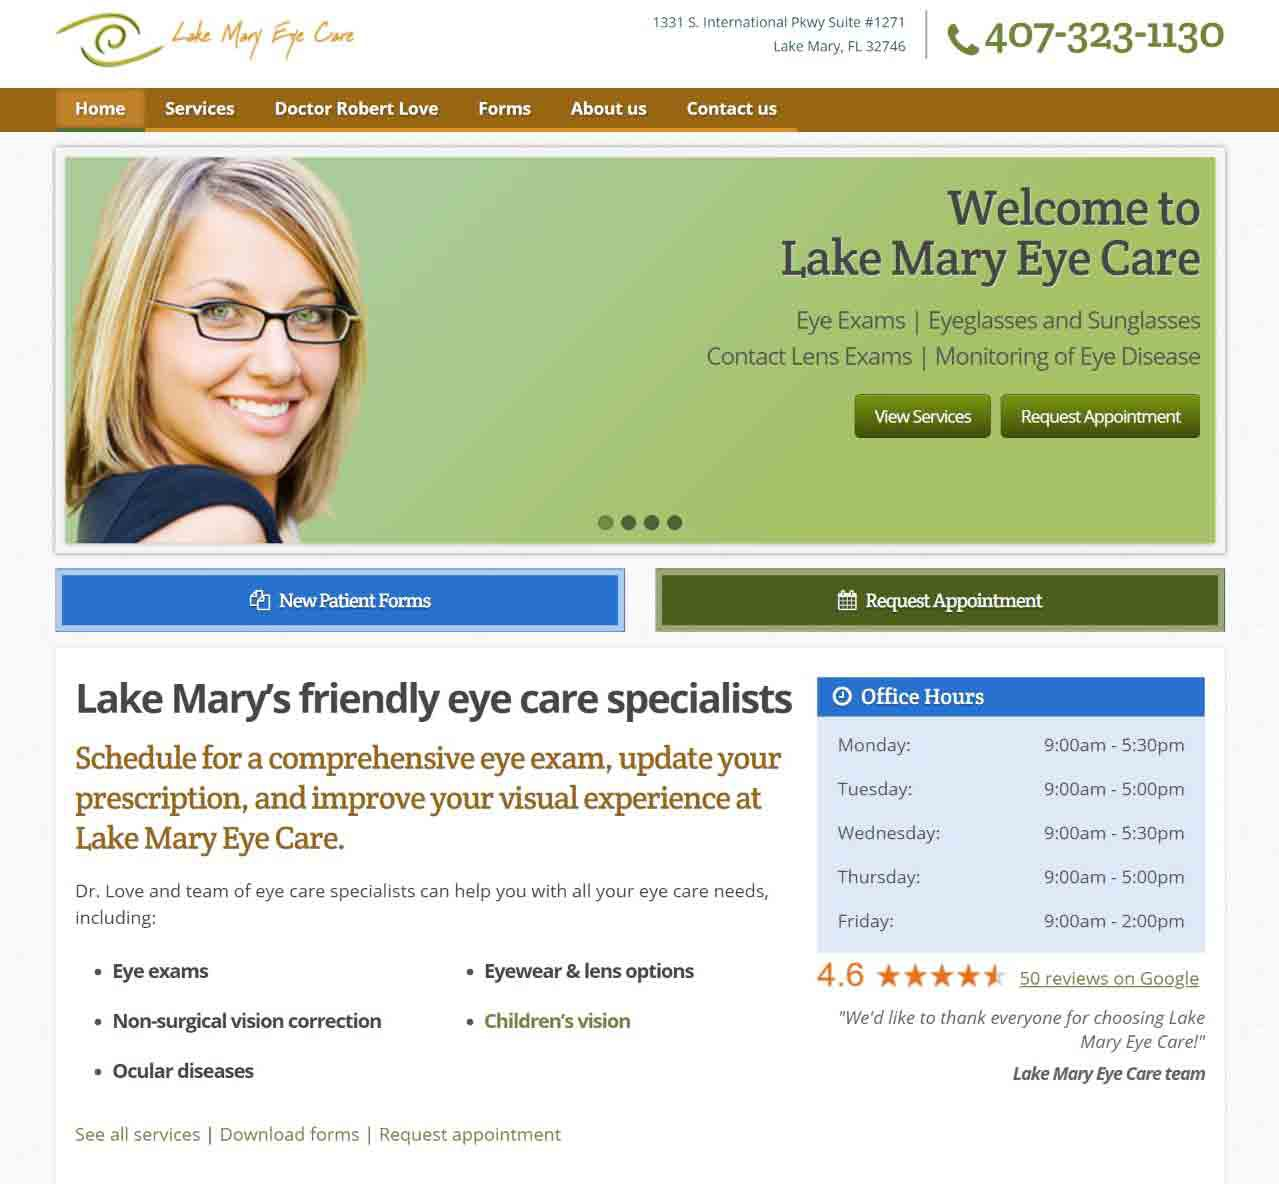 Lake Mary Eye Care Homepage Screenshot